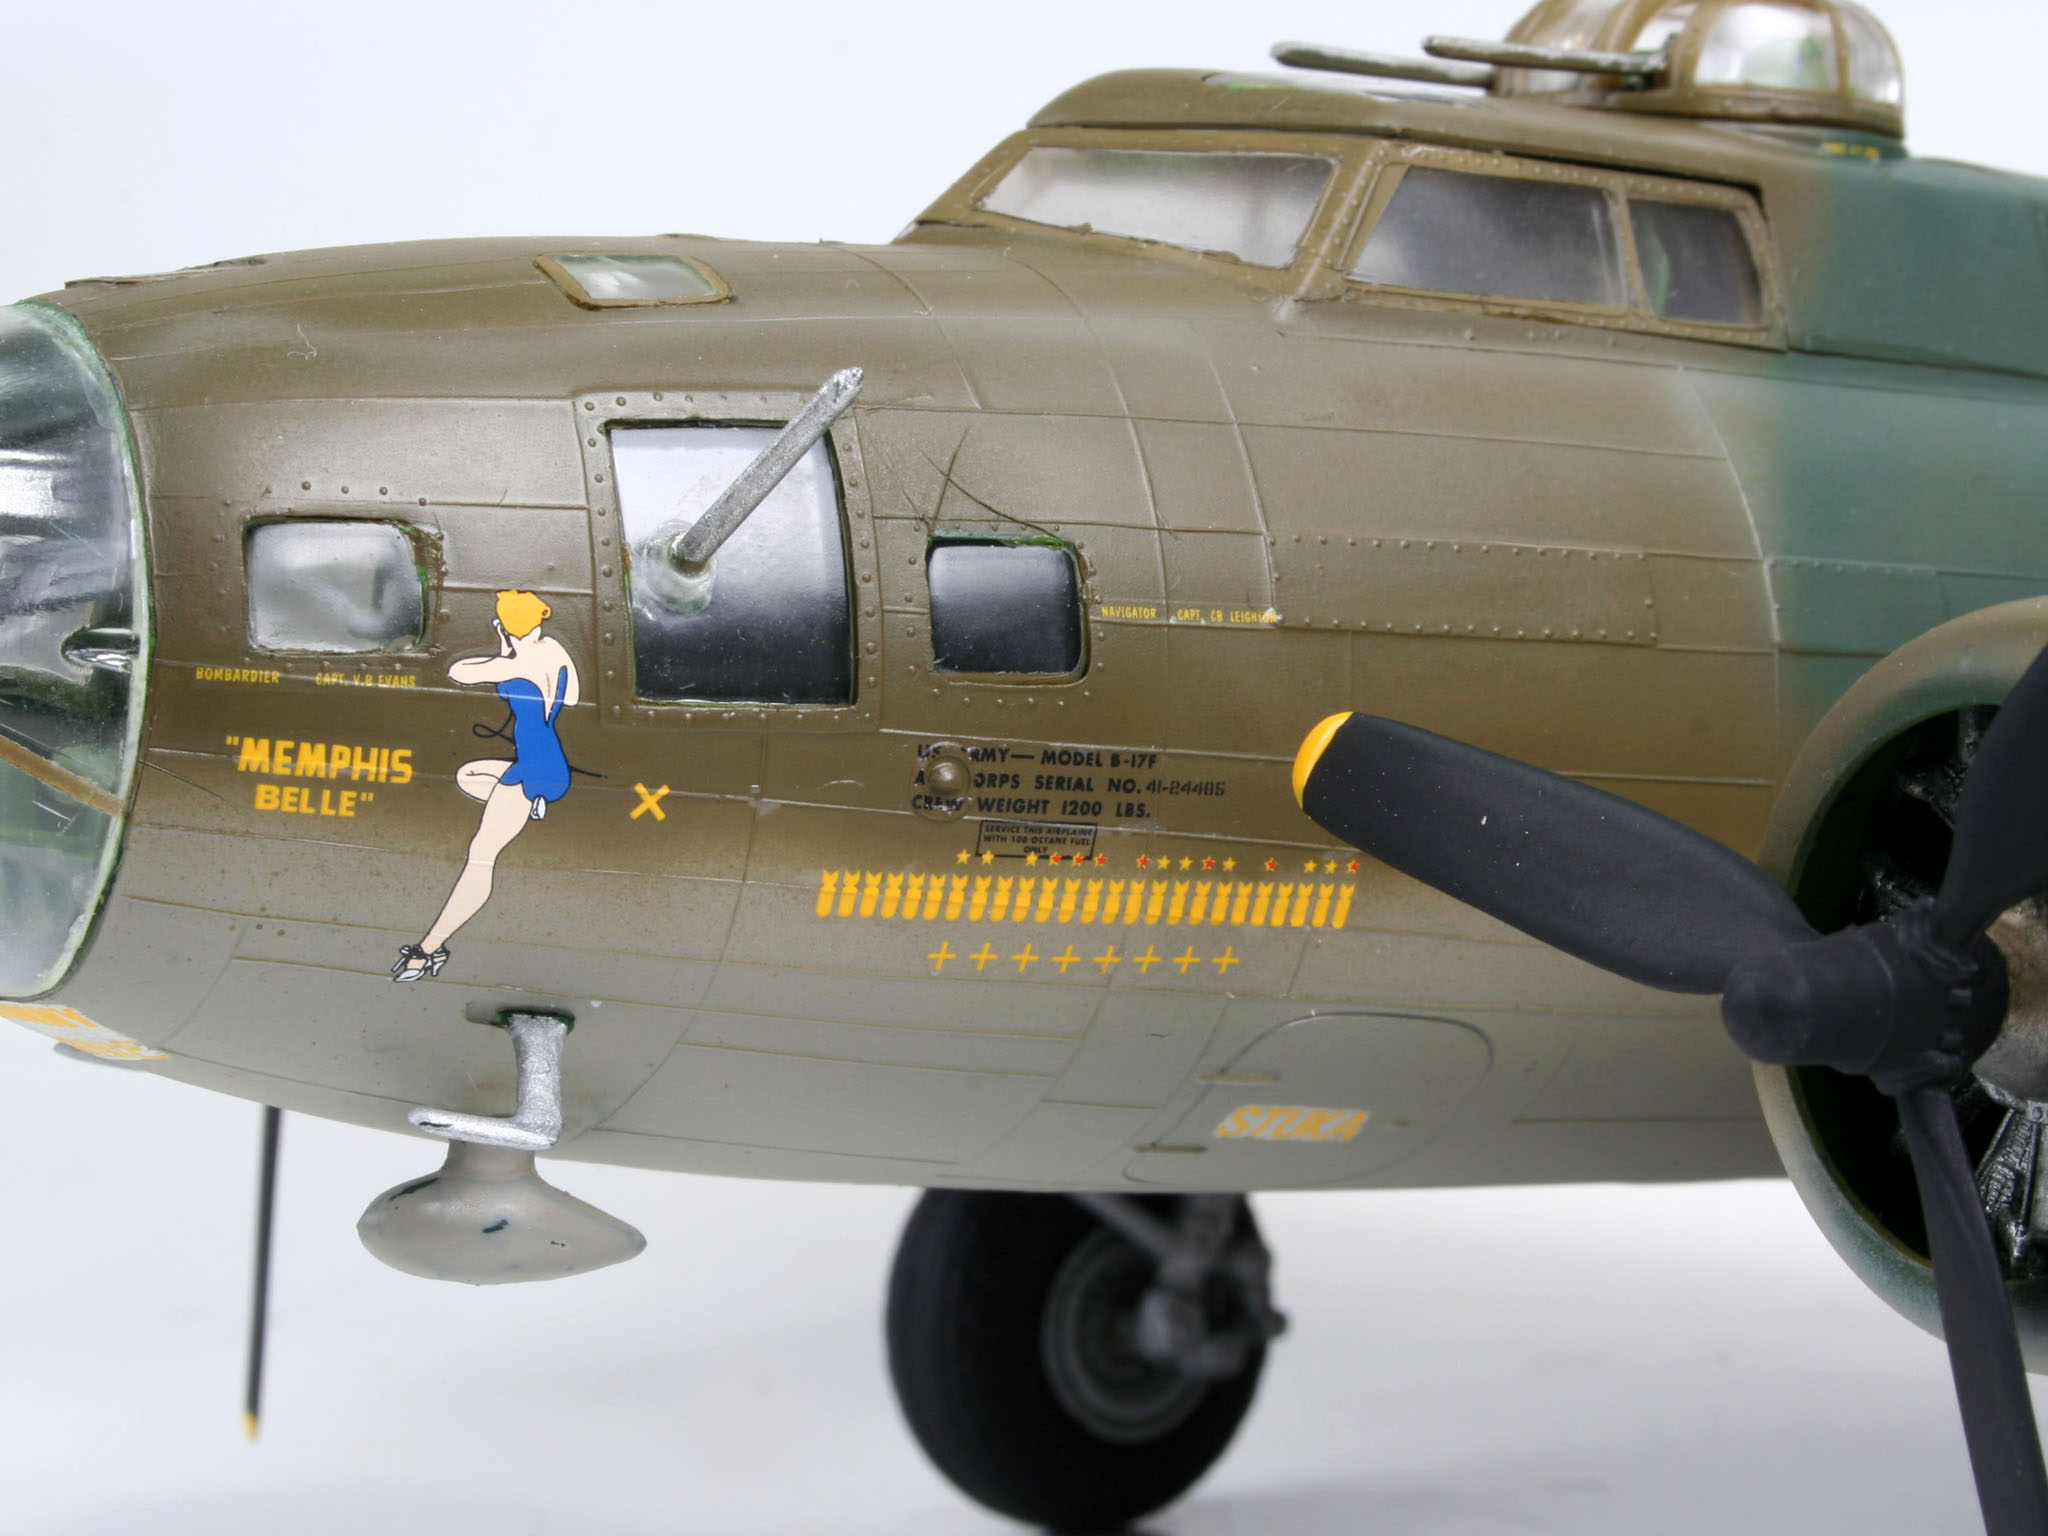 spare parts for rc helicopter with B 17f Memphis Belle Revell on Eurofighter Typhoon likewise Cirrus Sr22 further Ignition CDI for DLA 56cc Engine Part Number 56 6 in addition Dji Mavic Air Foldable Gps Drone Fly More  bo Rtf additionally B 17F Memphis Belle Revell.